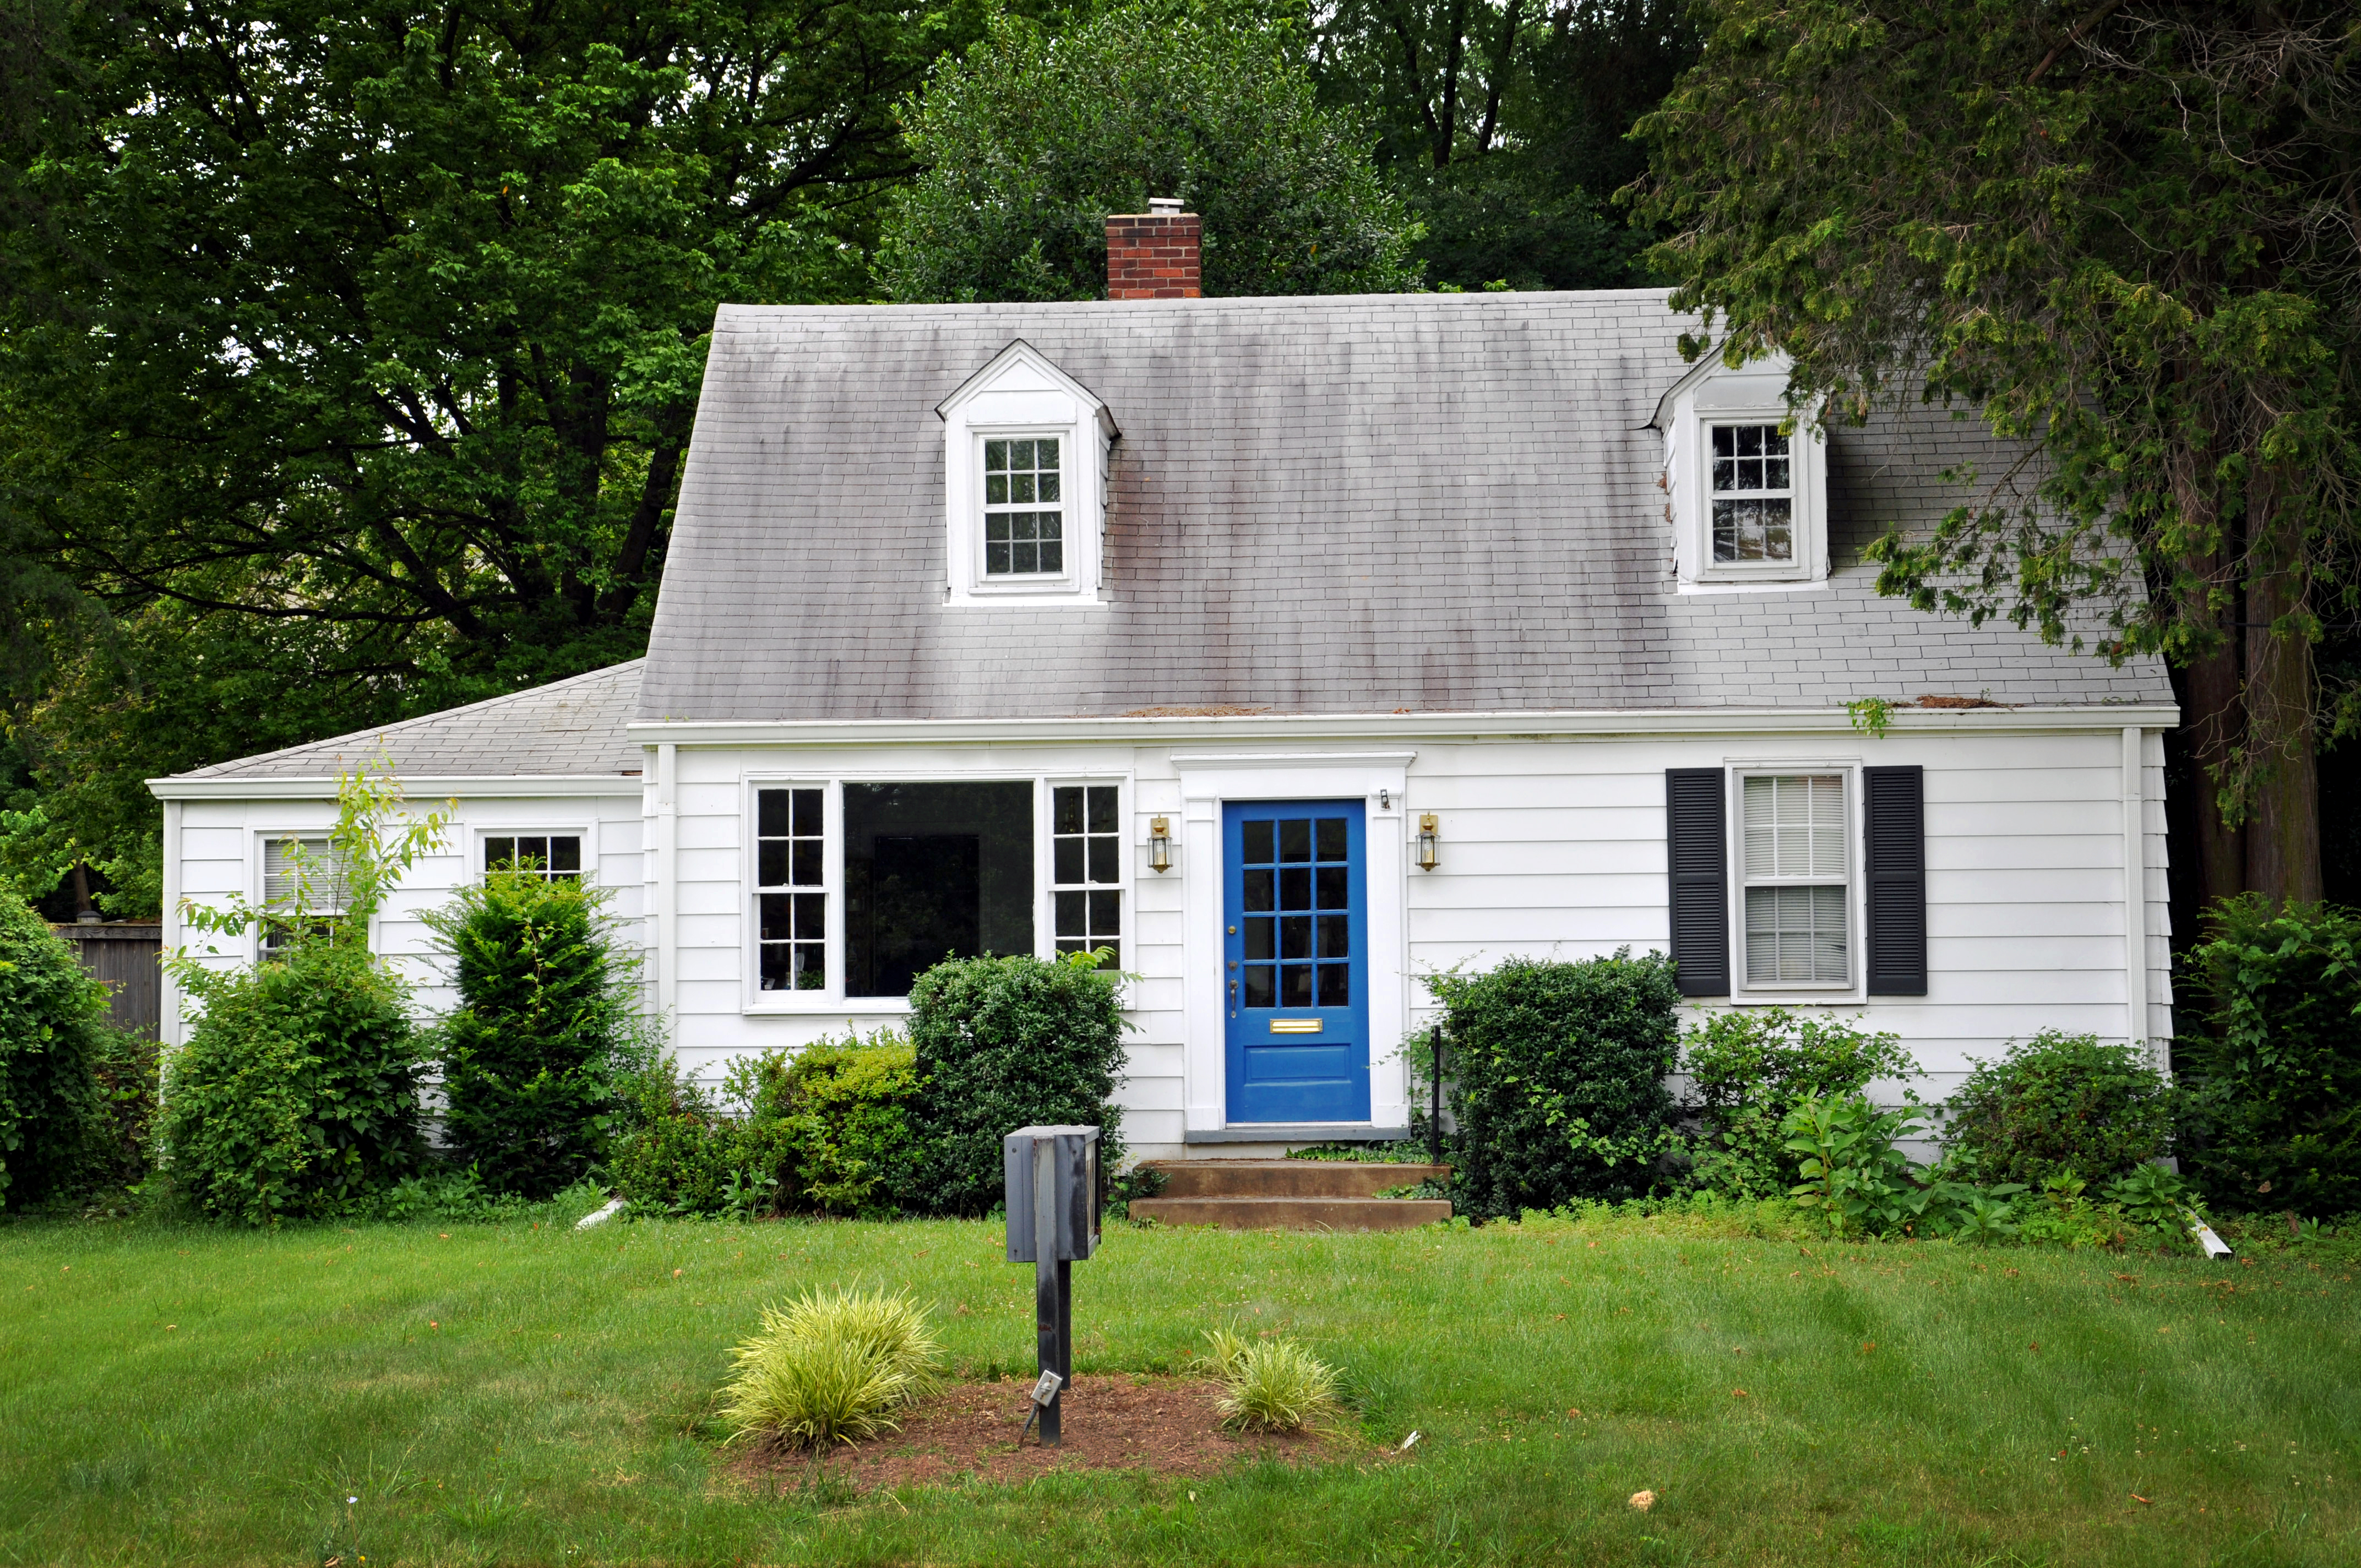 Fixer upper house that is white with a blue door